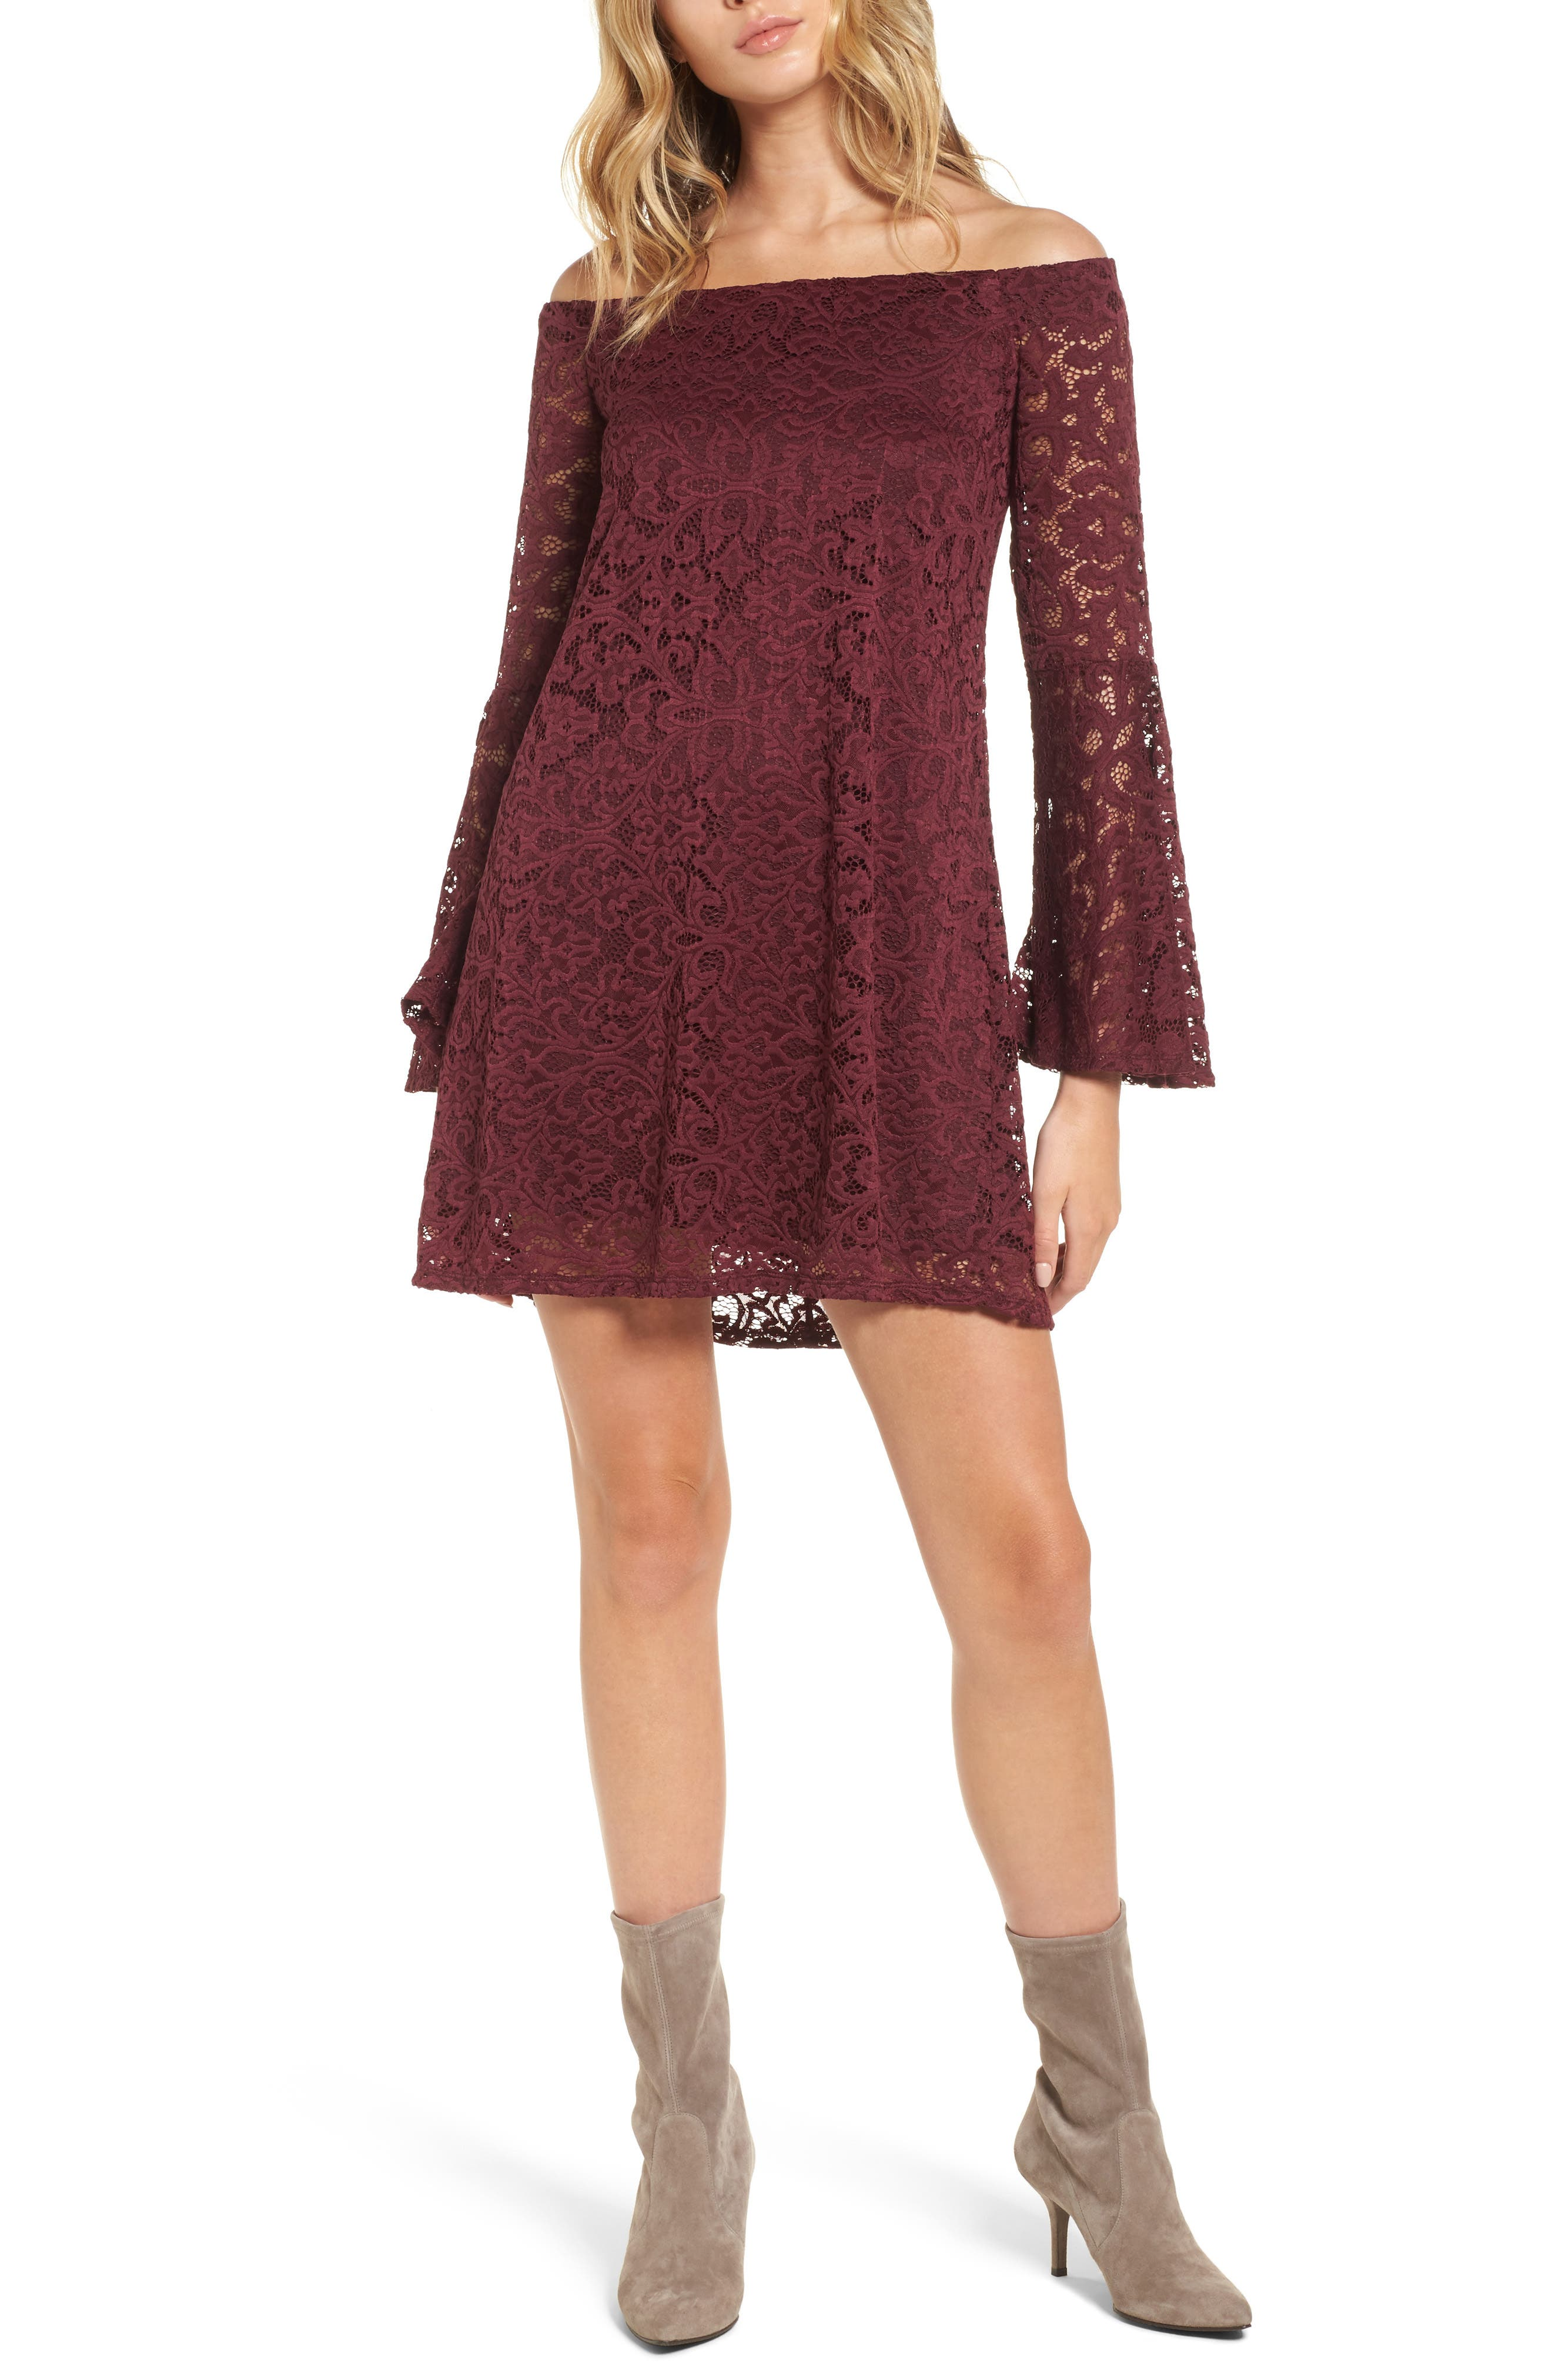 Lace Bell Sleeve Off the Shoulder Dress,                             Main thumbnail 1, color,                             930